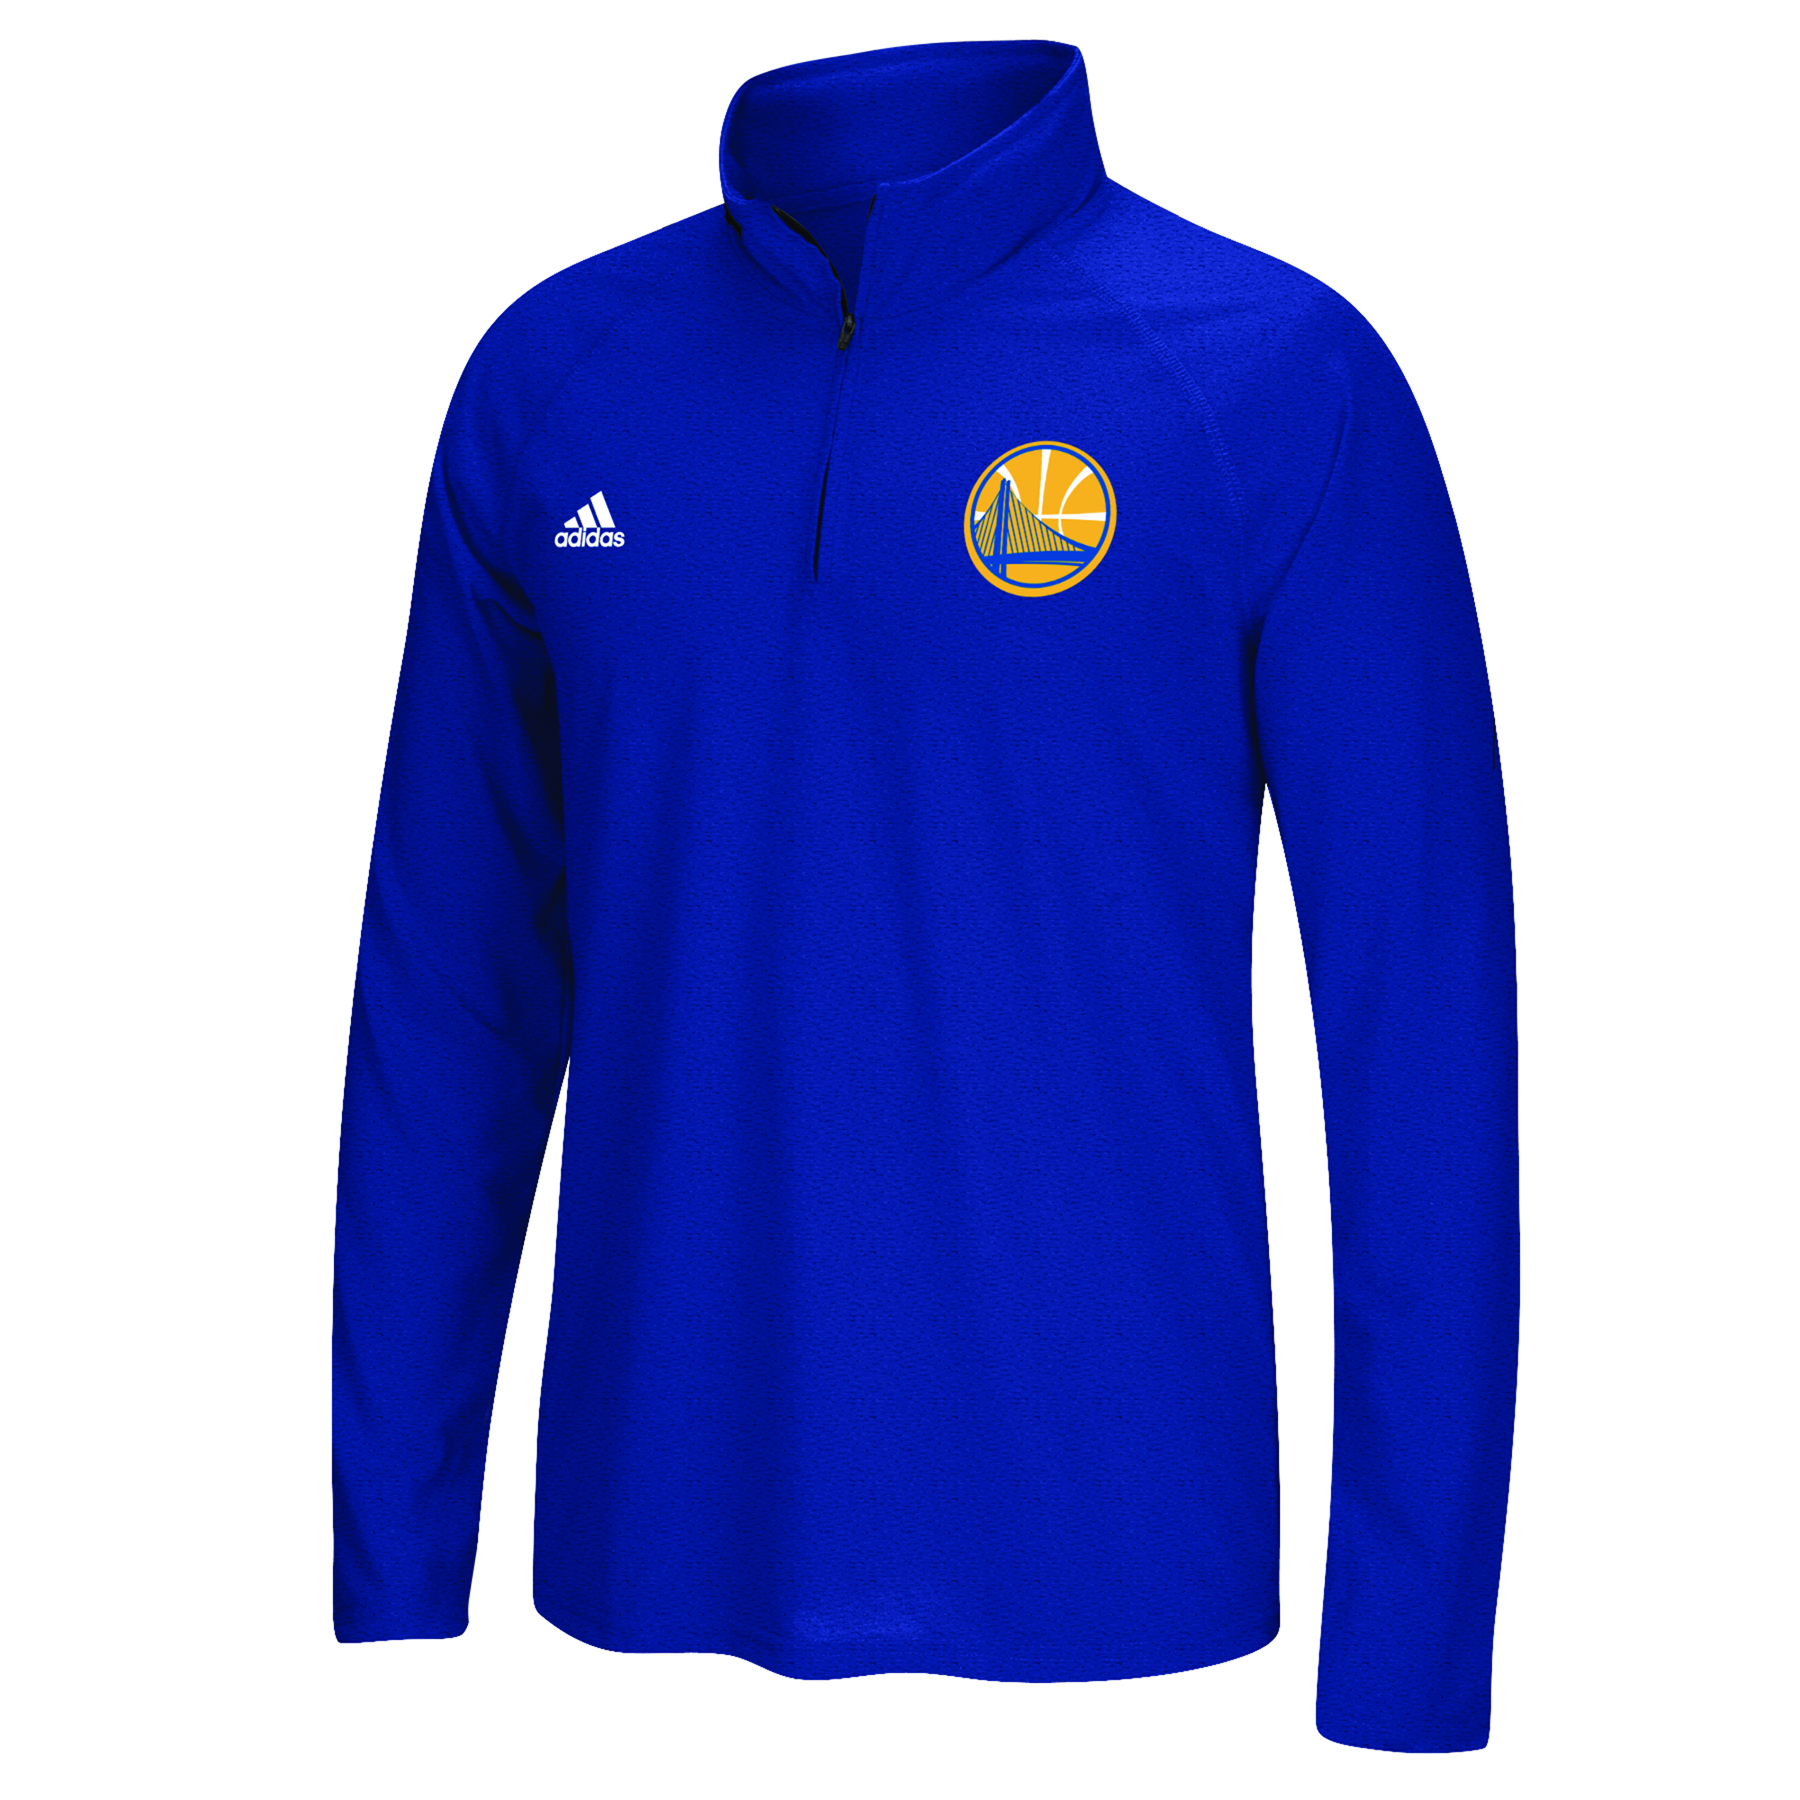 Golden State Warriors adidas Climalite 1/4 Zip Top - Mens